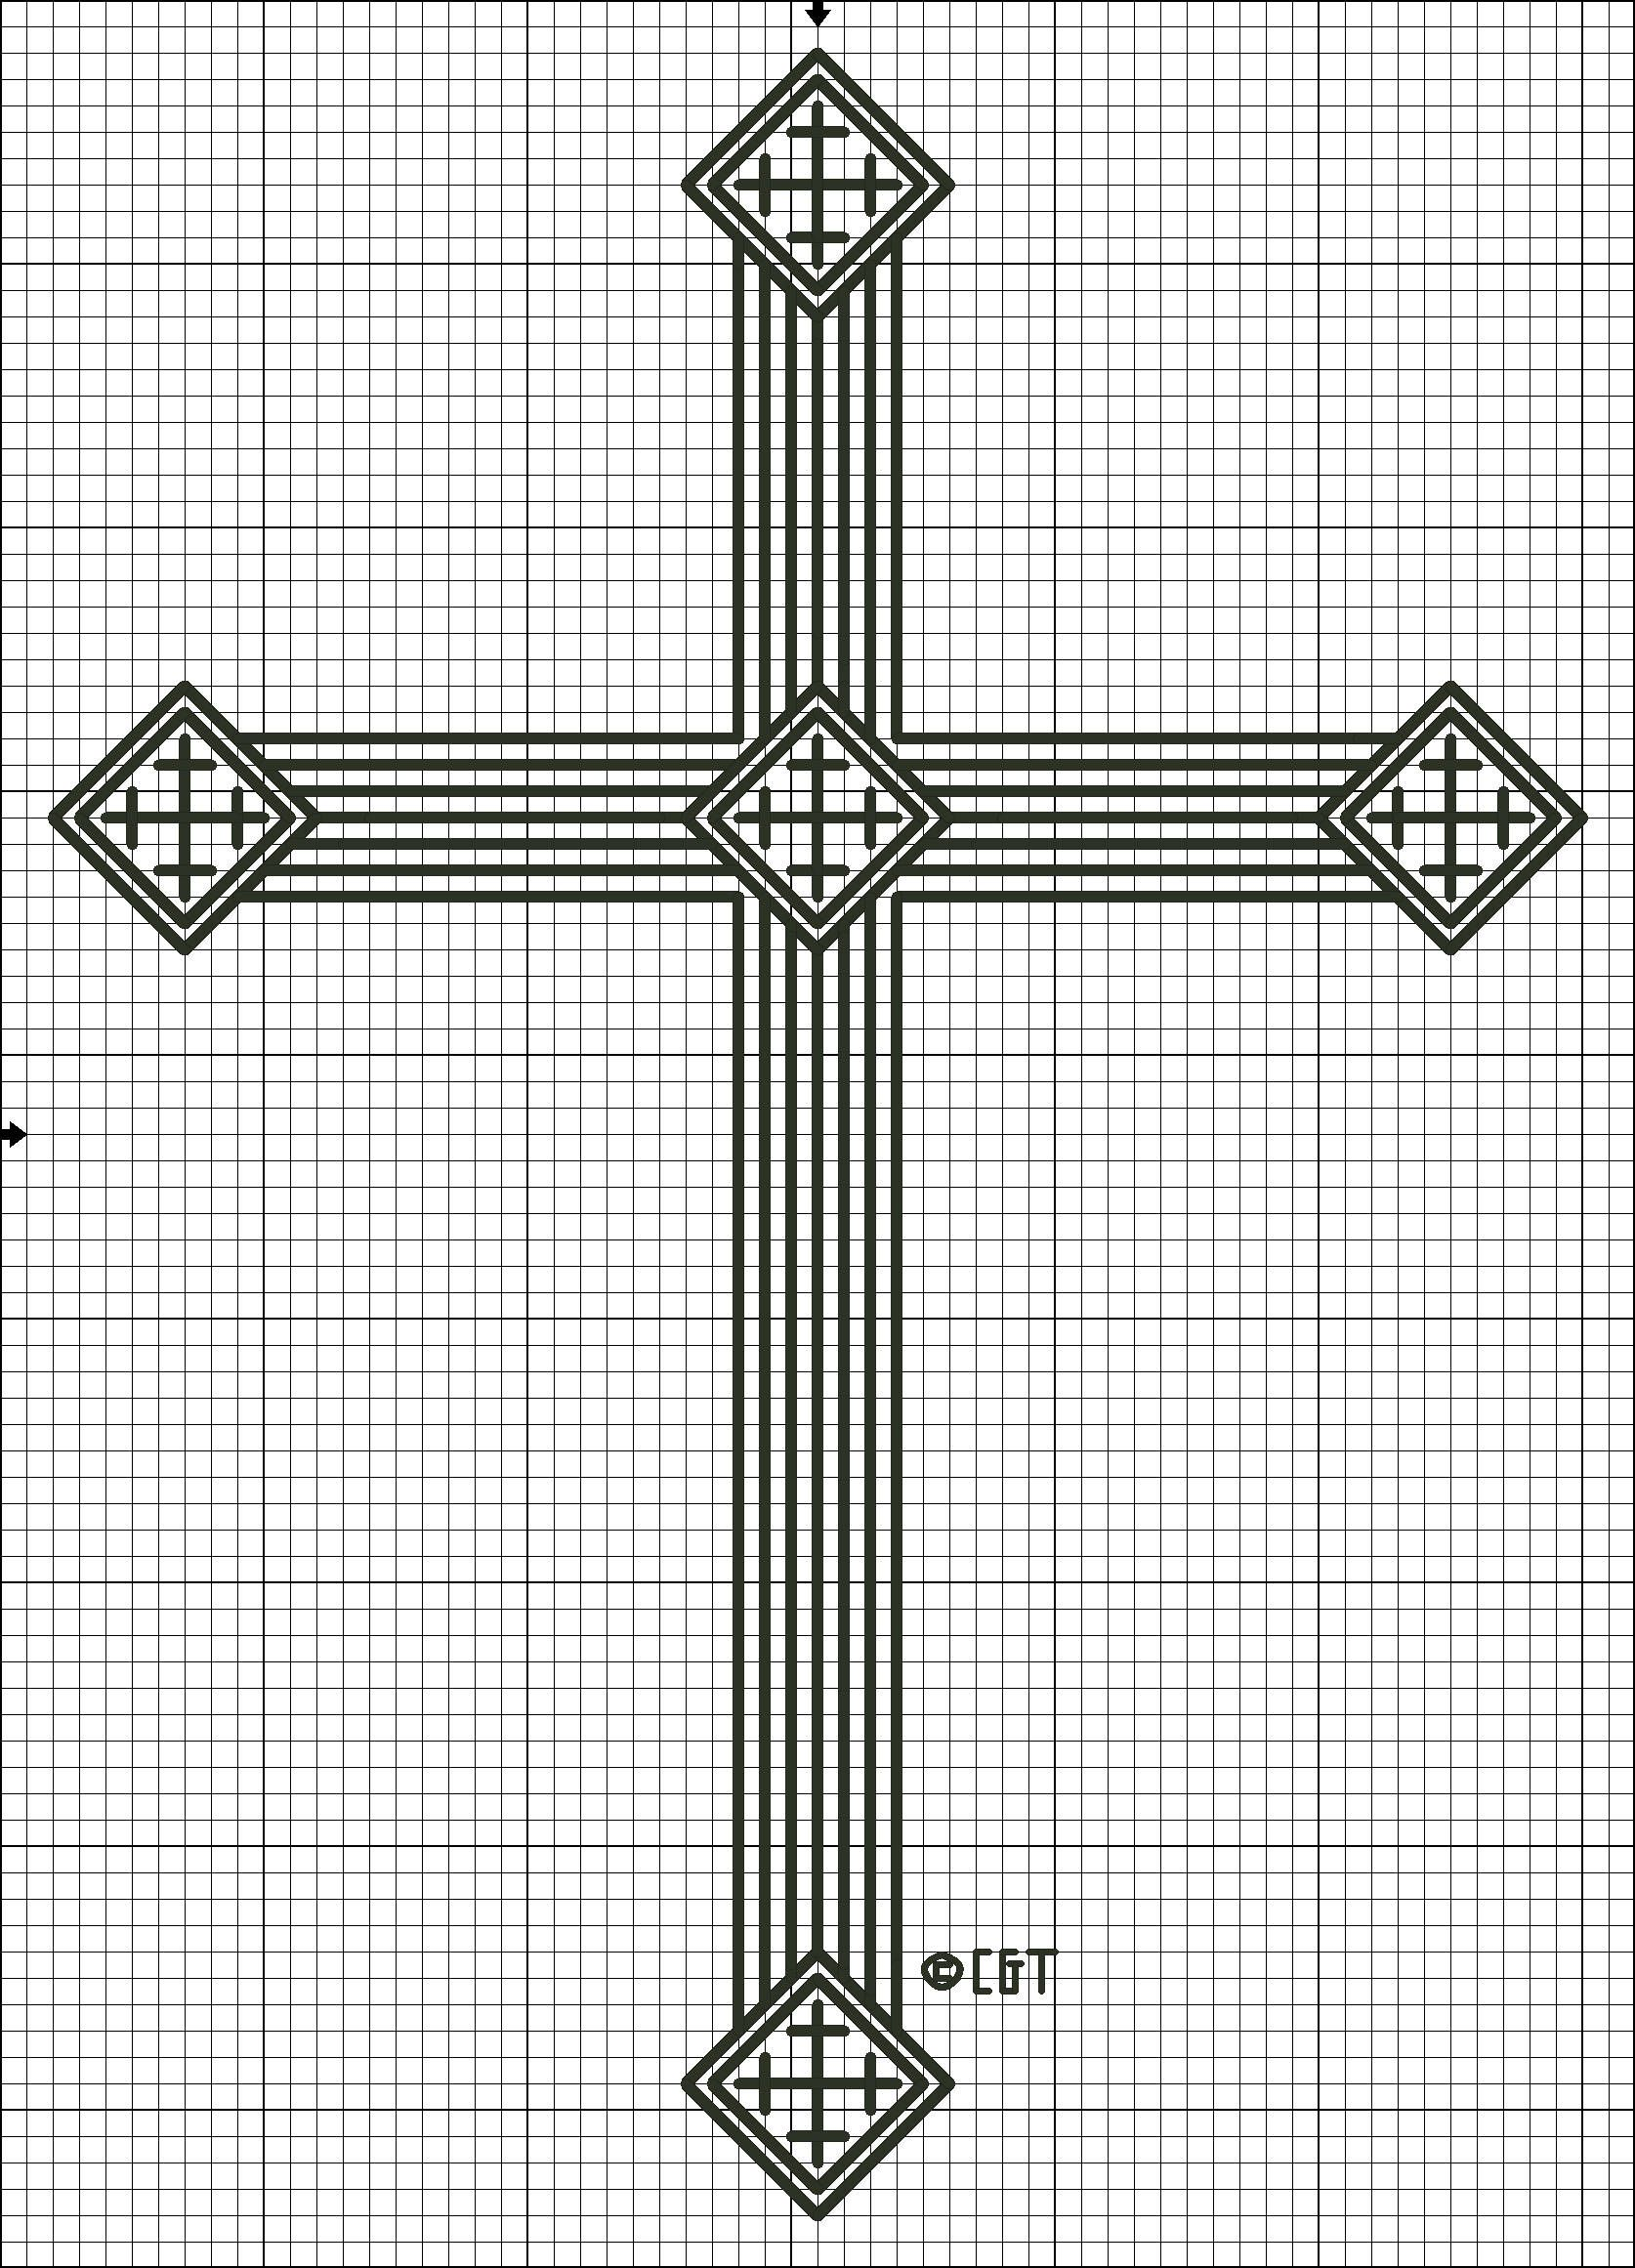 Cross stitch blackwork cross stitch and free printable craft cross stitch patterns free bankloansurffo Gallery